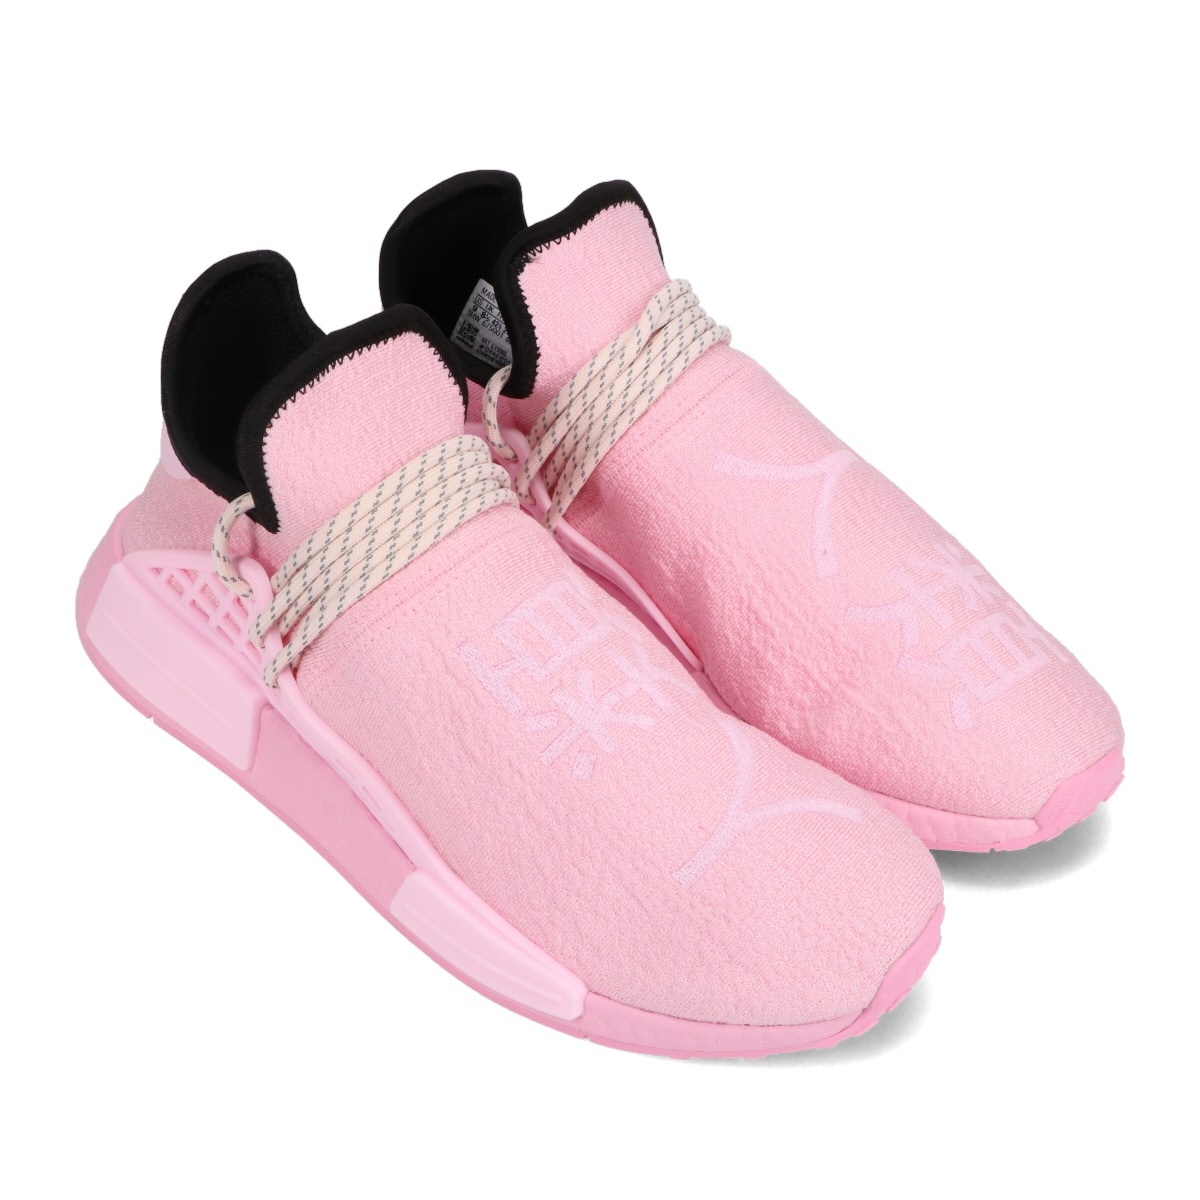 adidas HU NMD TRUE PINK/CLEAR PINK/CORE BLACK 20FW-S_photo_large